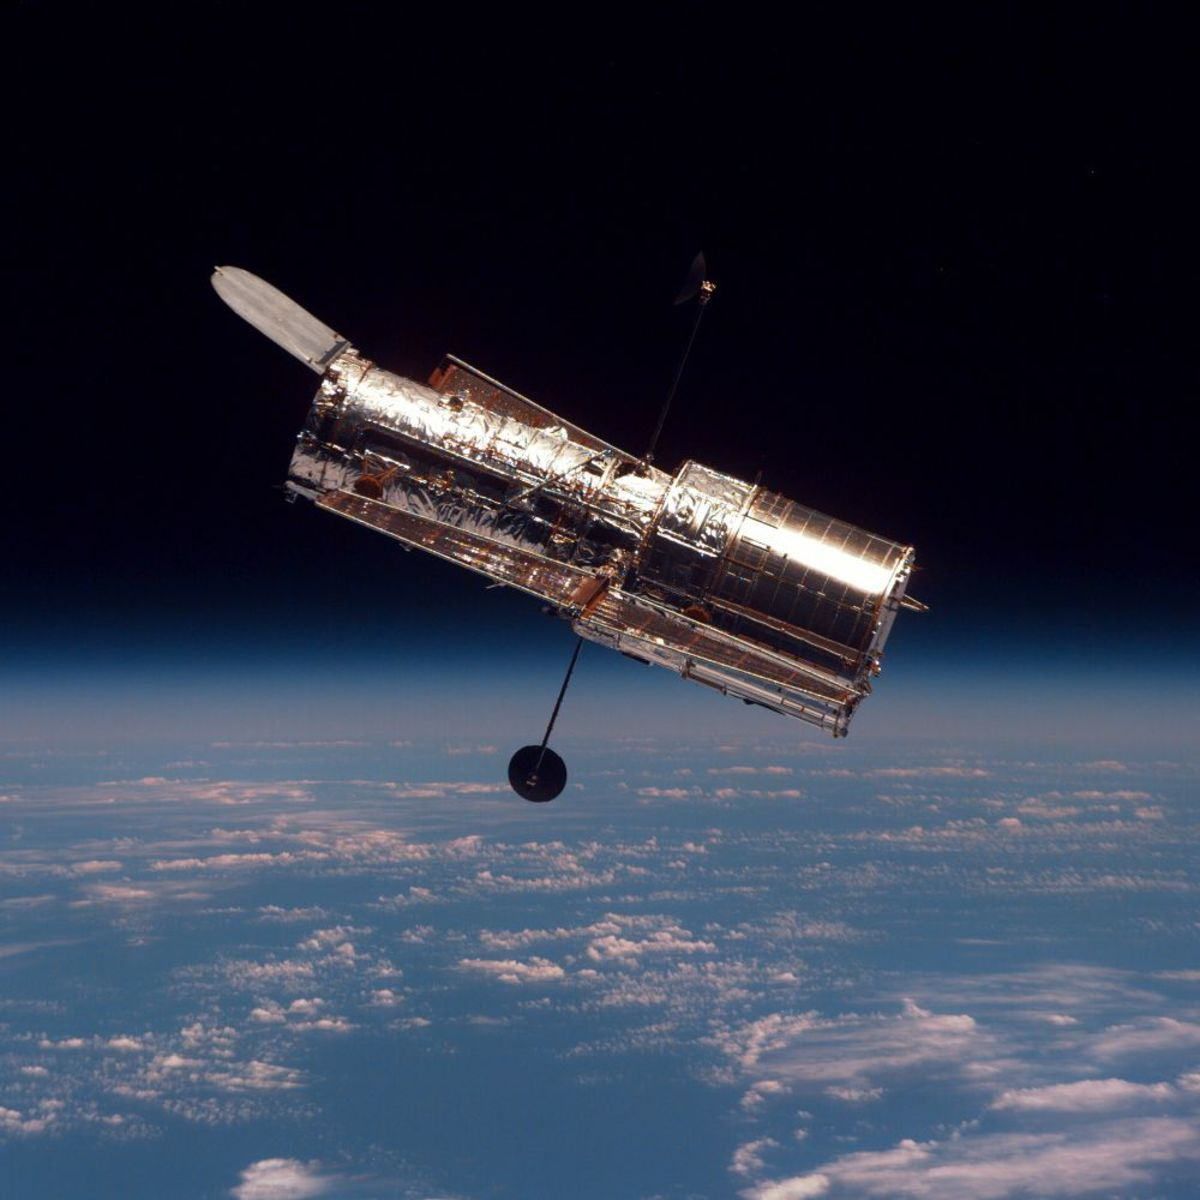 Hubble telescope during the second servicing mission back in February 1997.